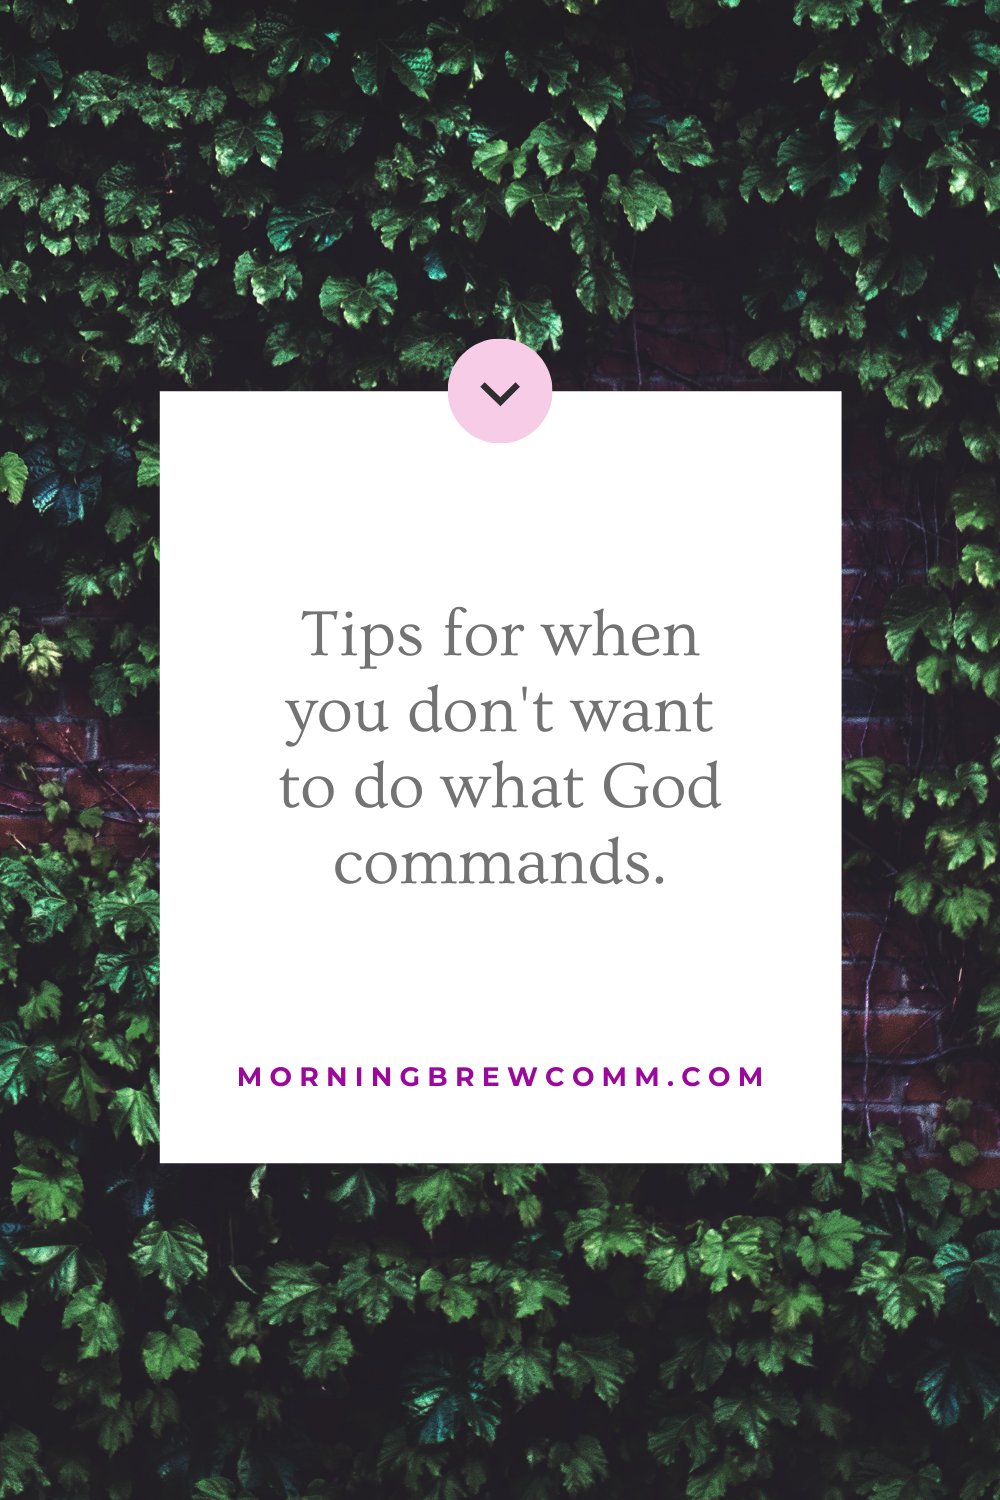 tips for when you don't want to do what God commands